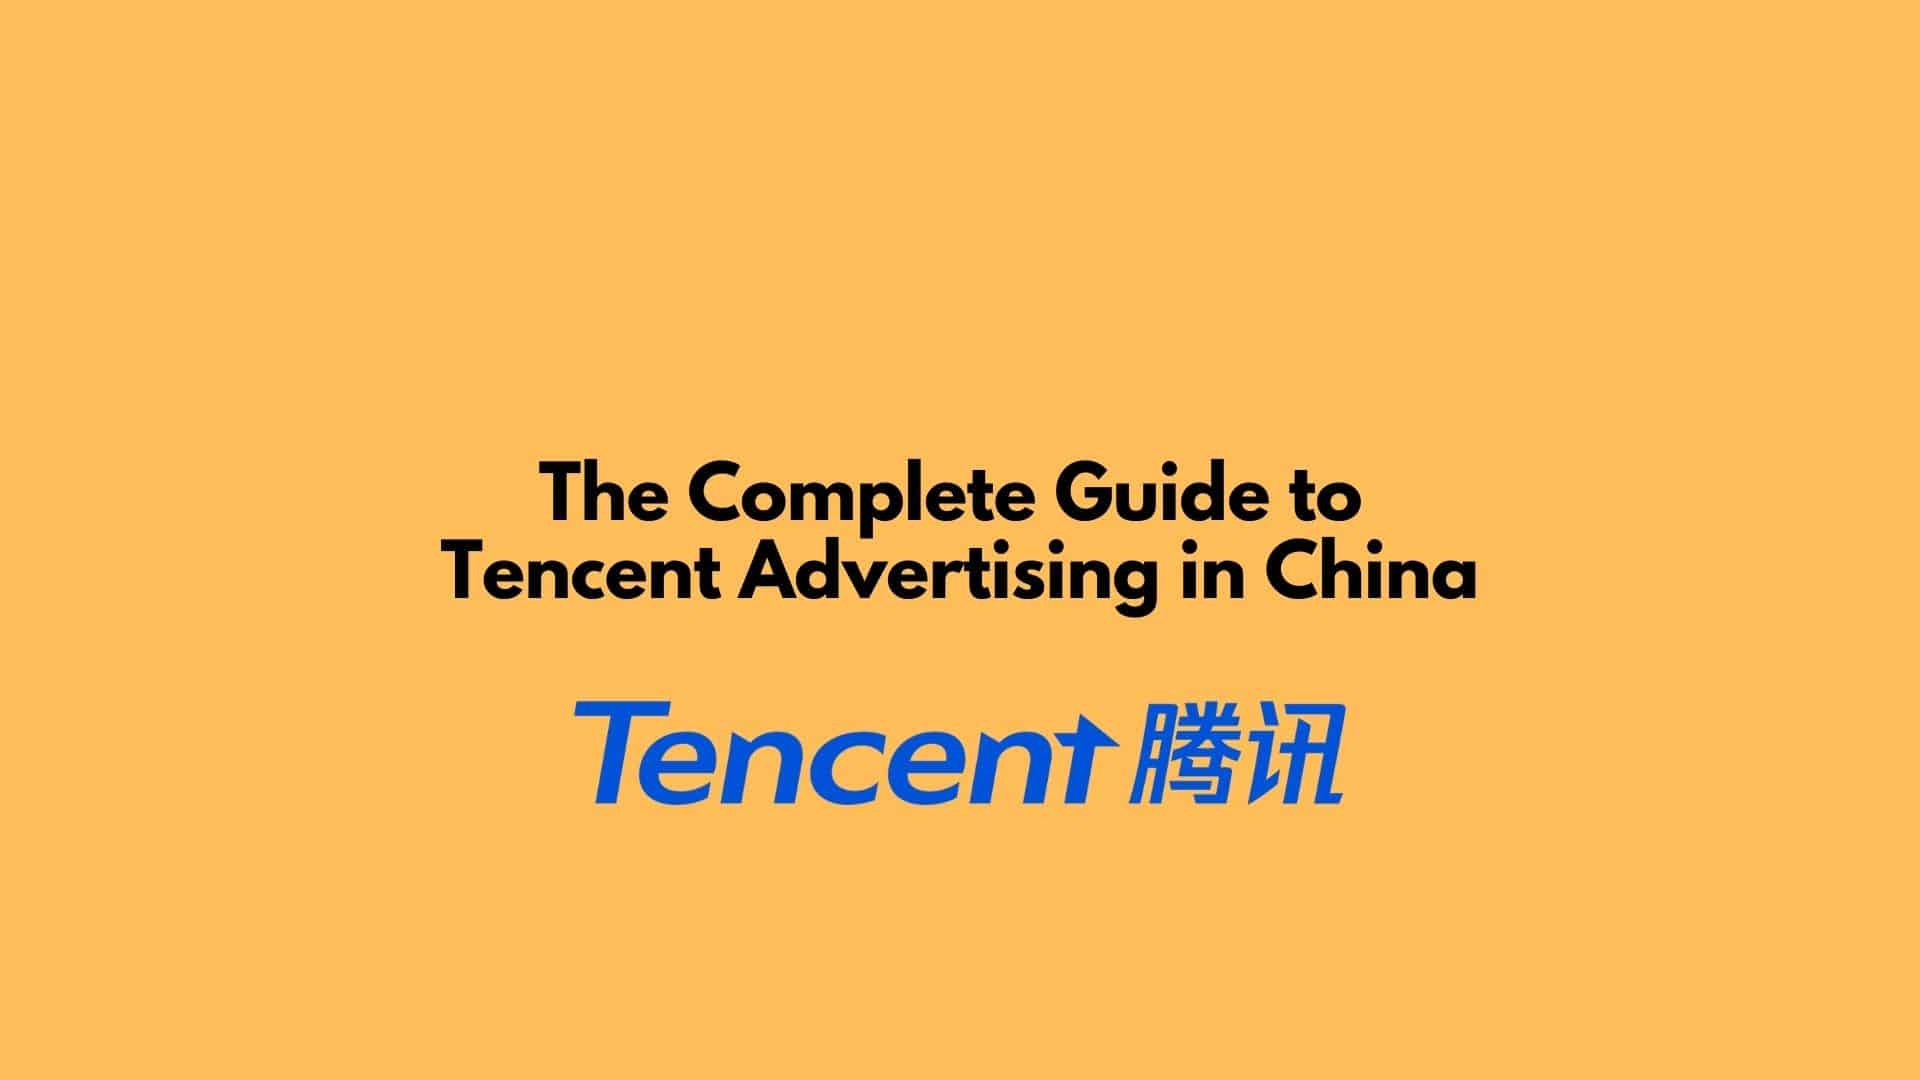 The Complete Guide to Tencent Advertising in China